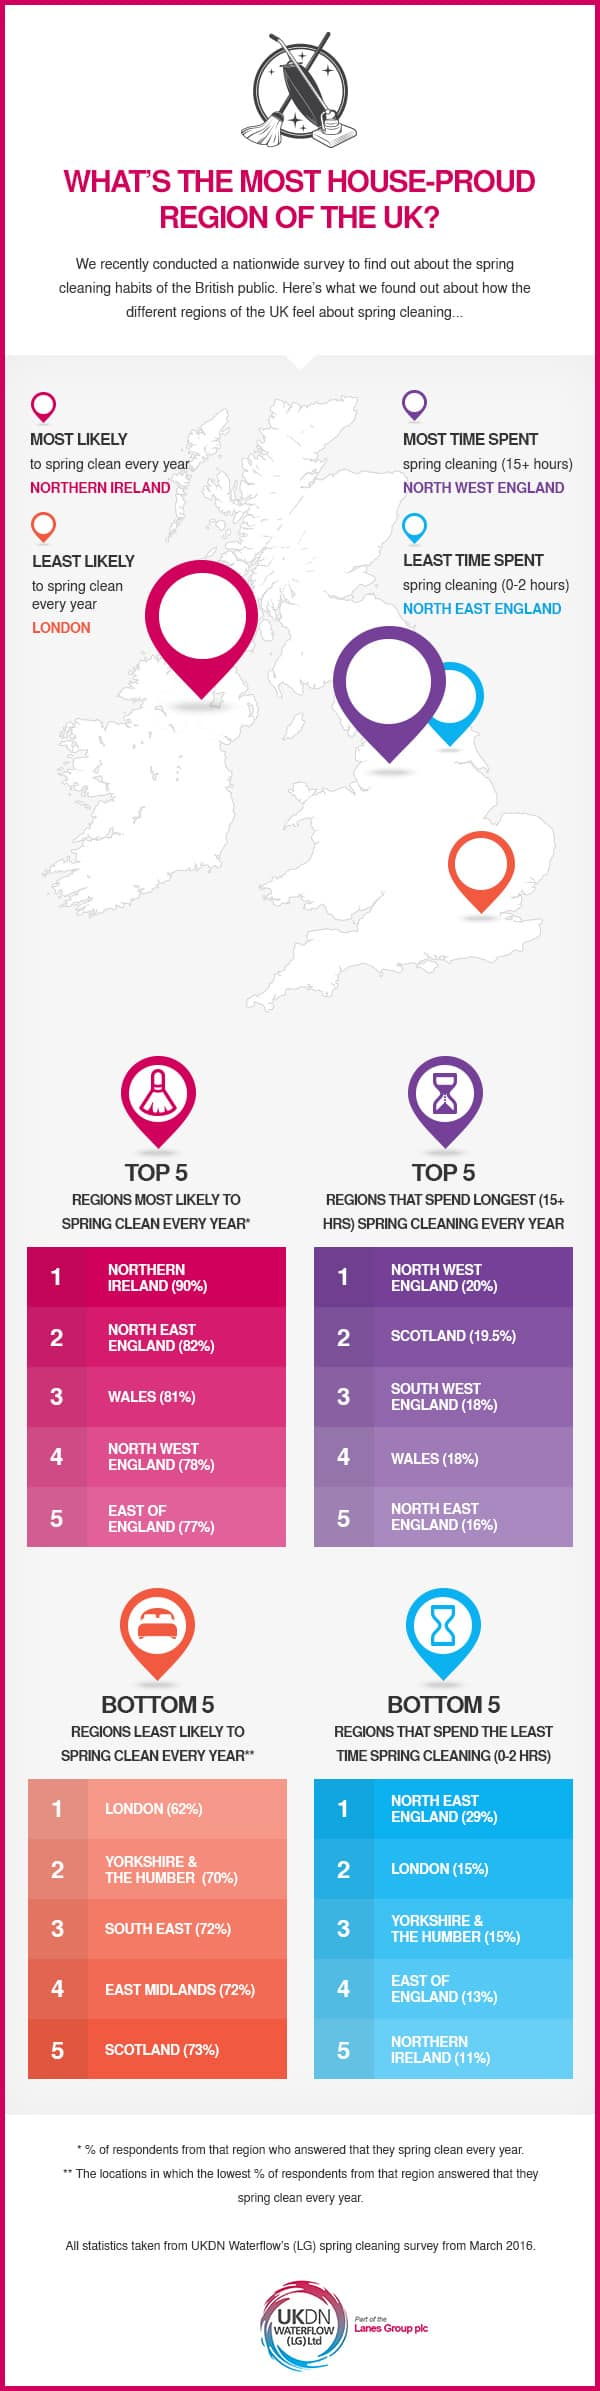 UKDN - What's the most house-proud region of the UK?